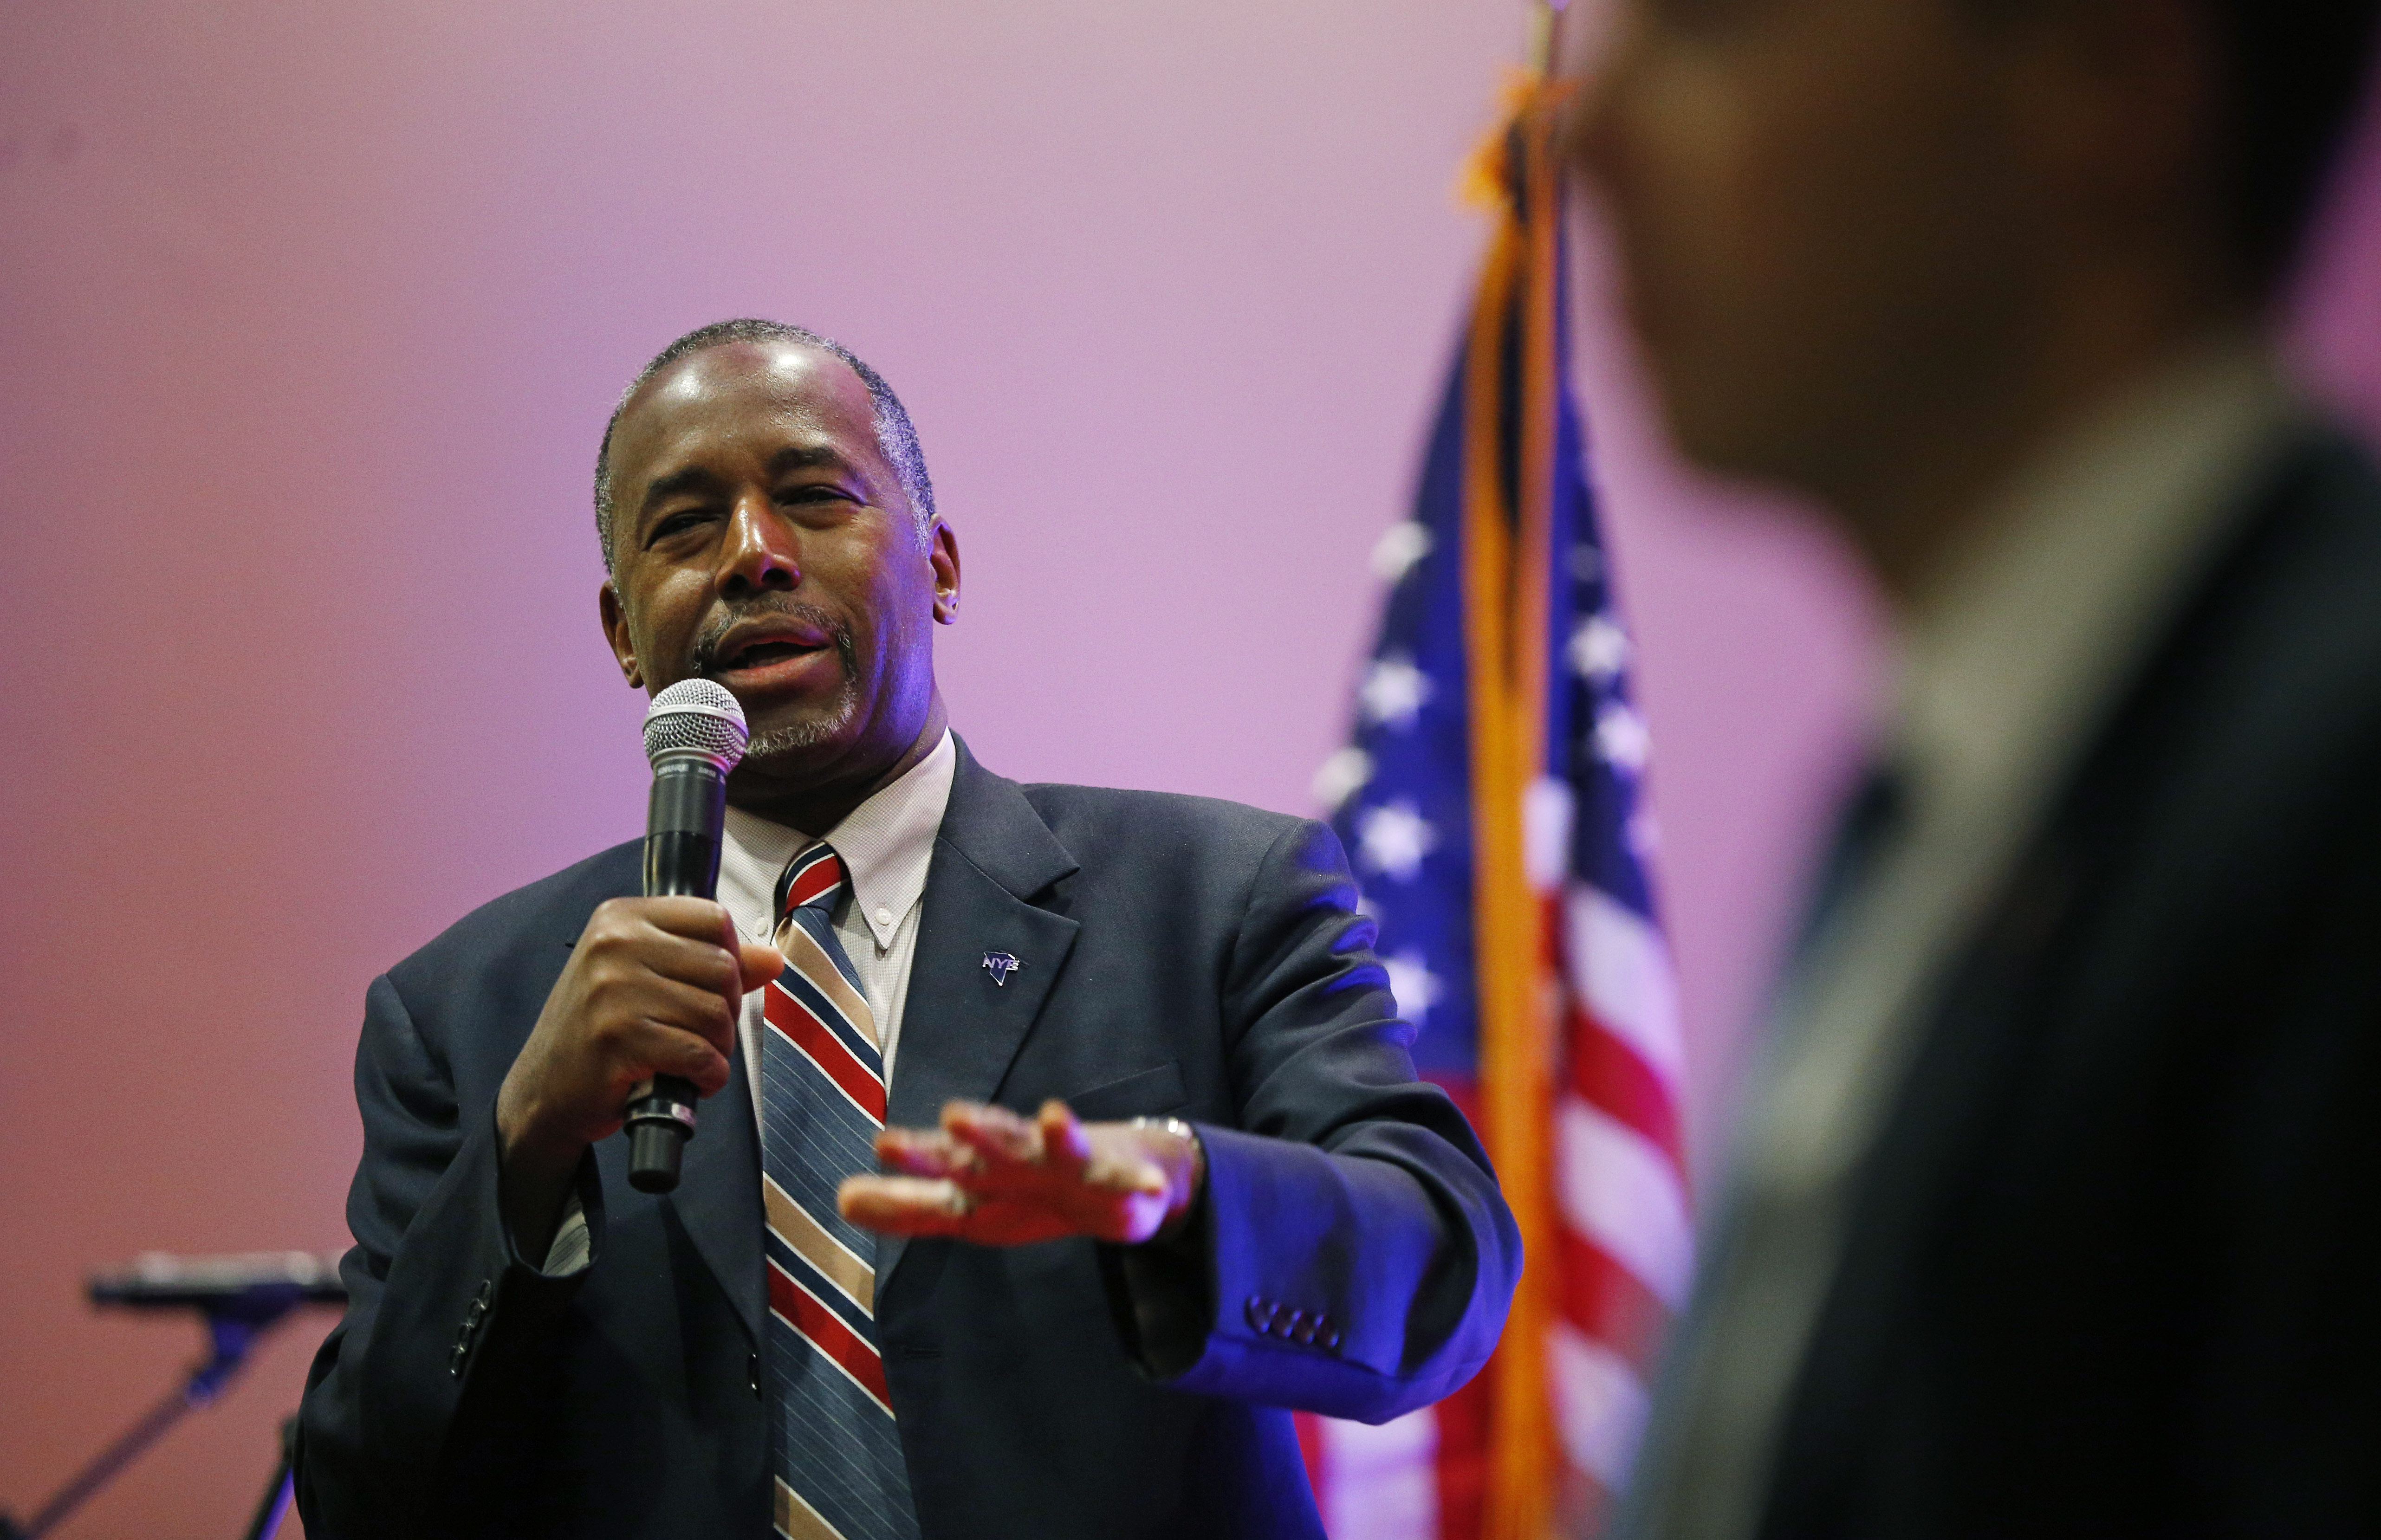 Republican presidential candidate, Dr. Ben Carson speaks at a rally in Pahrump, Nevada, Nov. 23, 2015.